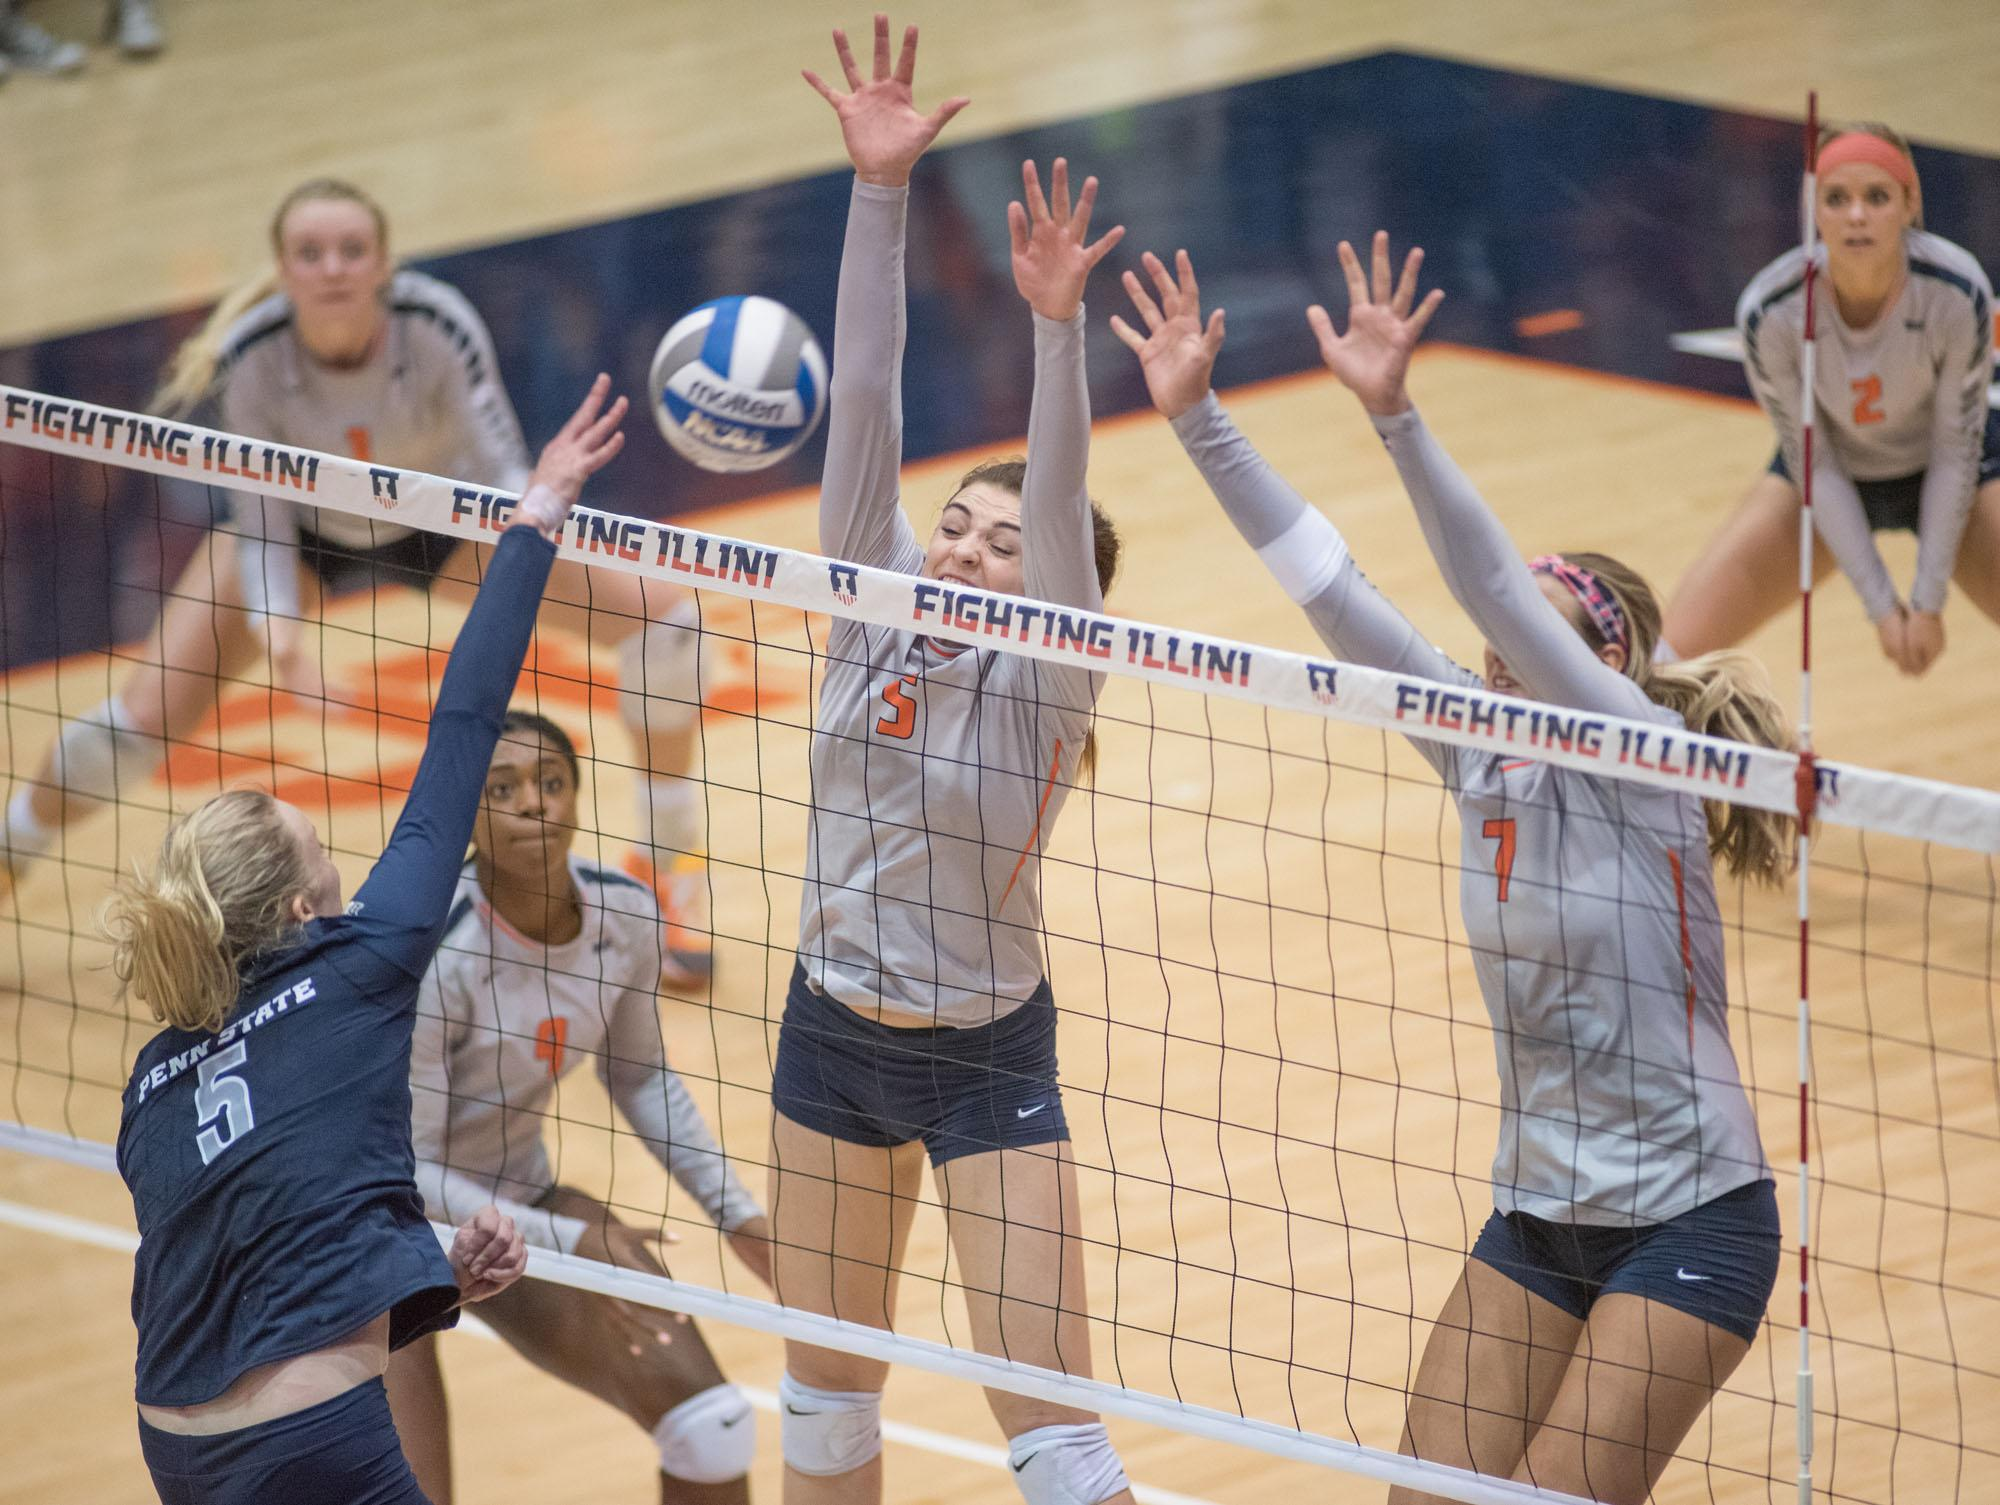 Illinois+volleyball+team+fails+to+bounce+back+in+its+return+home+and+pushes+losing+streak+to+four+games.